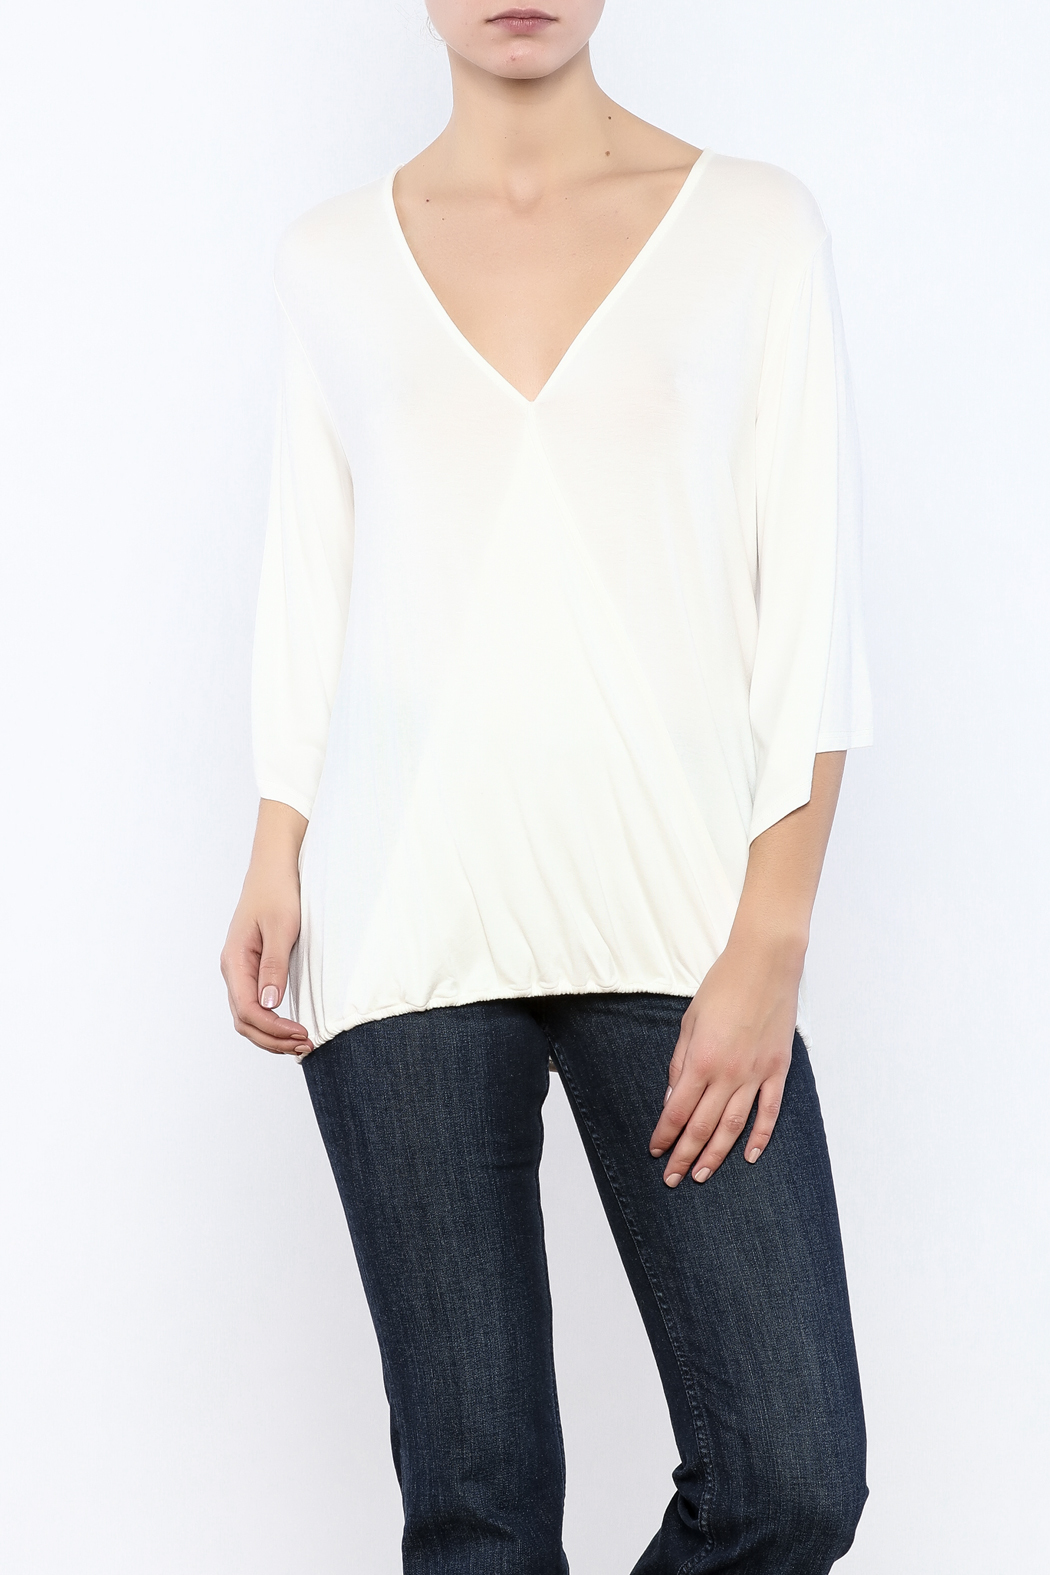 Veronica M Versatile Surplus Top - Front Cropped Image